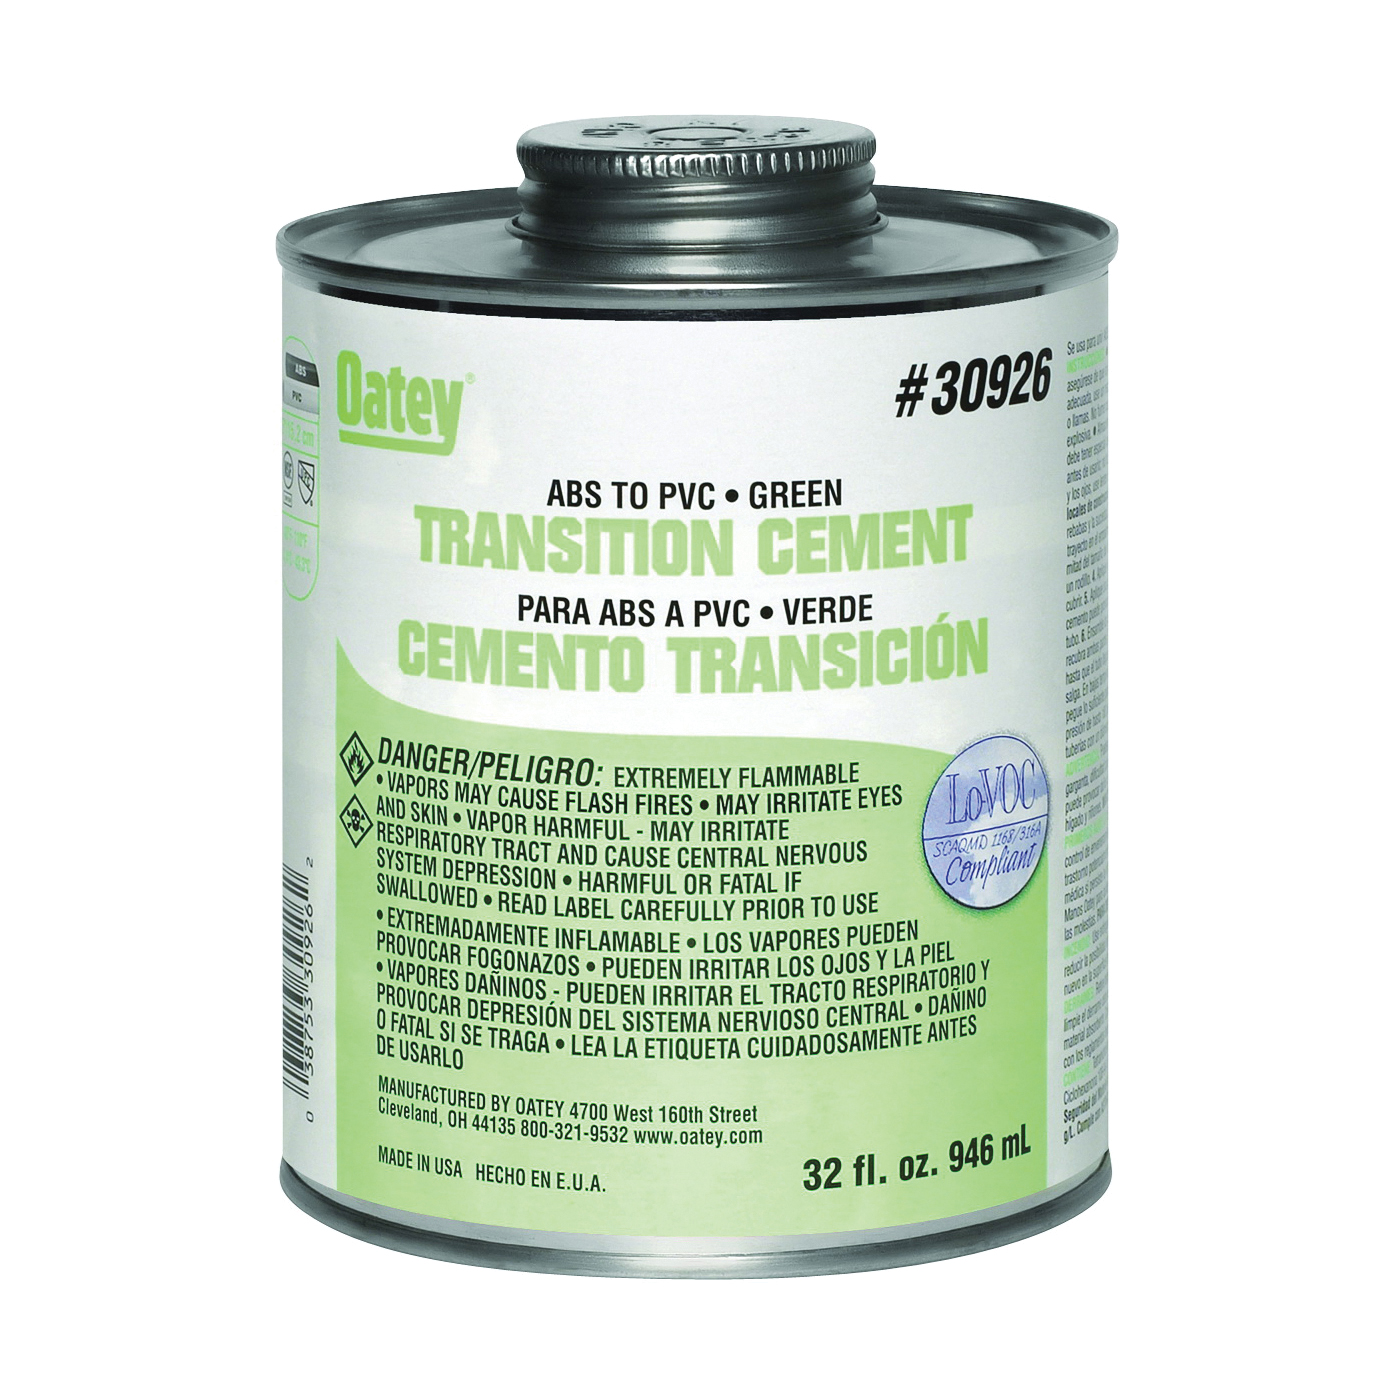 Picture of Oatey 30926 Solvent Cement, 32 oz, Can, Liquid, Green